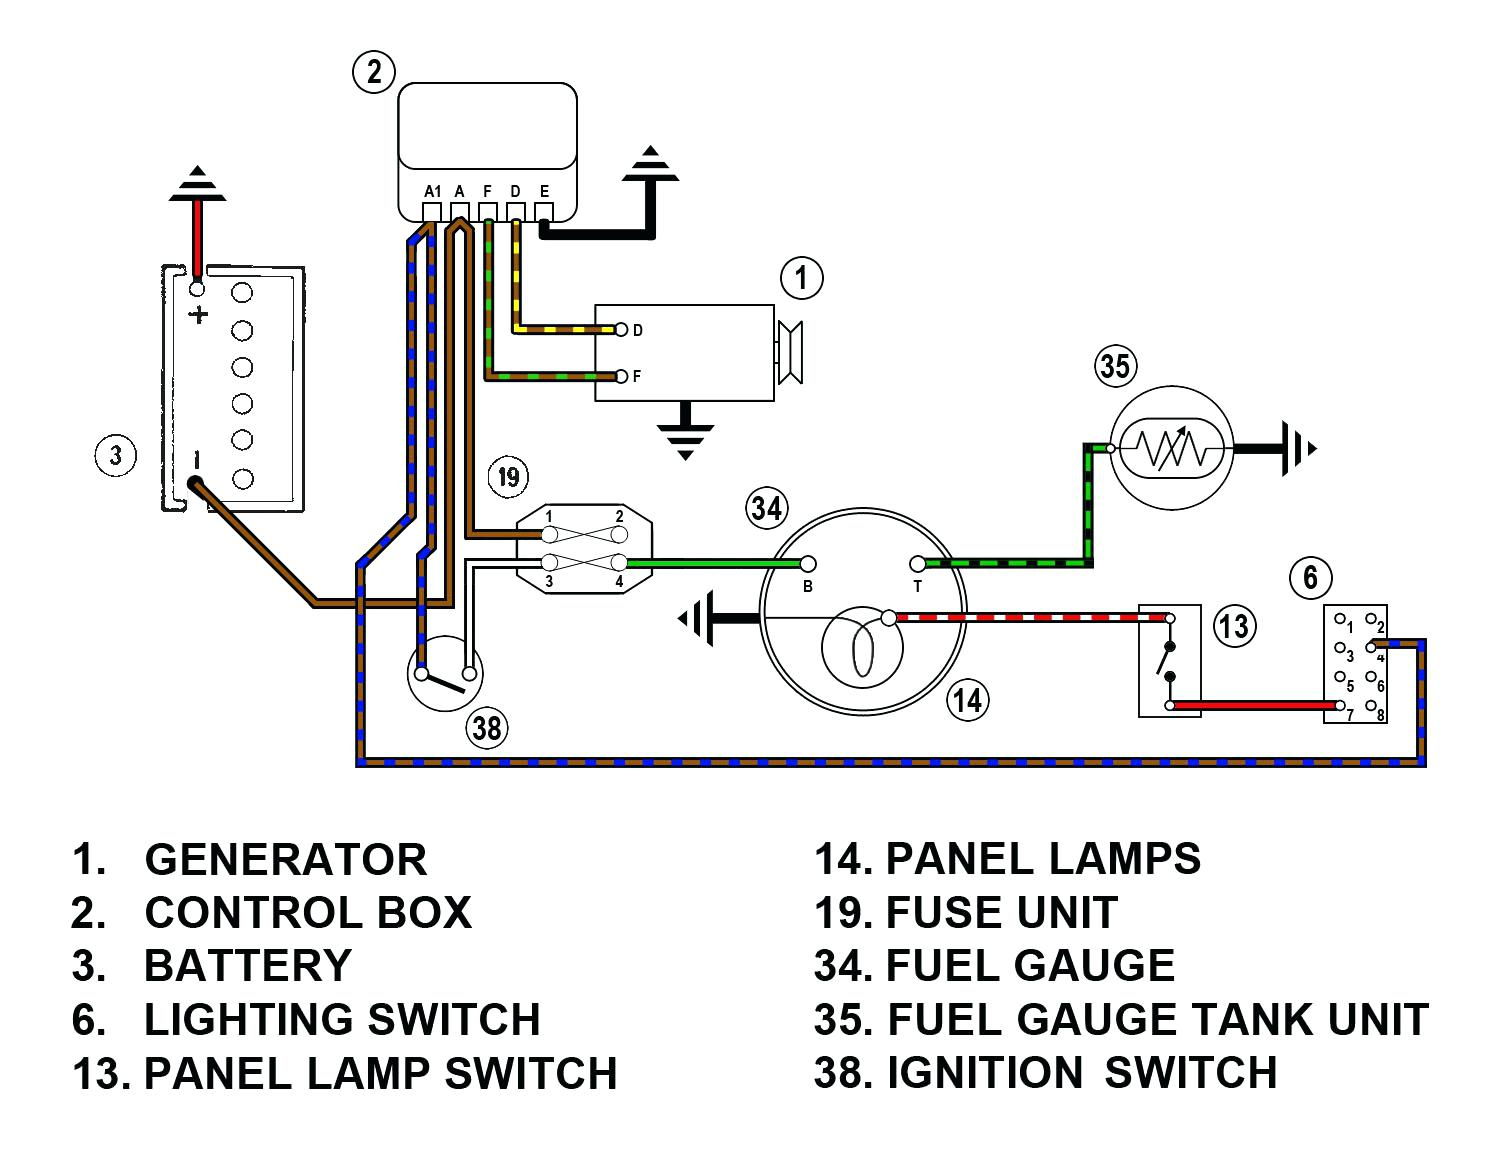 hight resolution of wrg 3749 duplex schematic wiring duplex pump control panel wiring diagram download duplex pump control